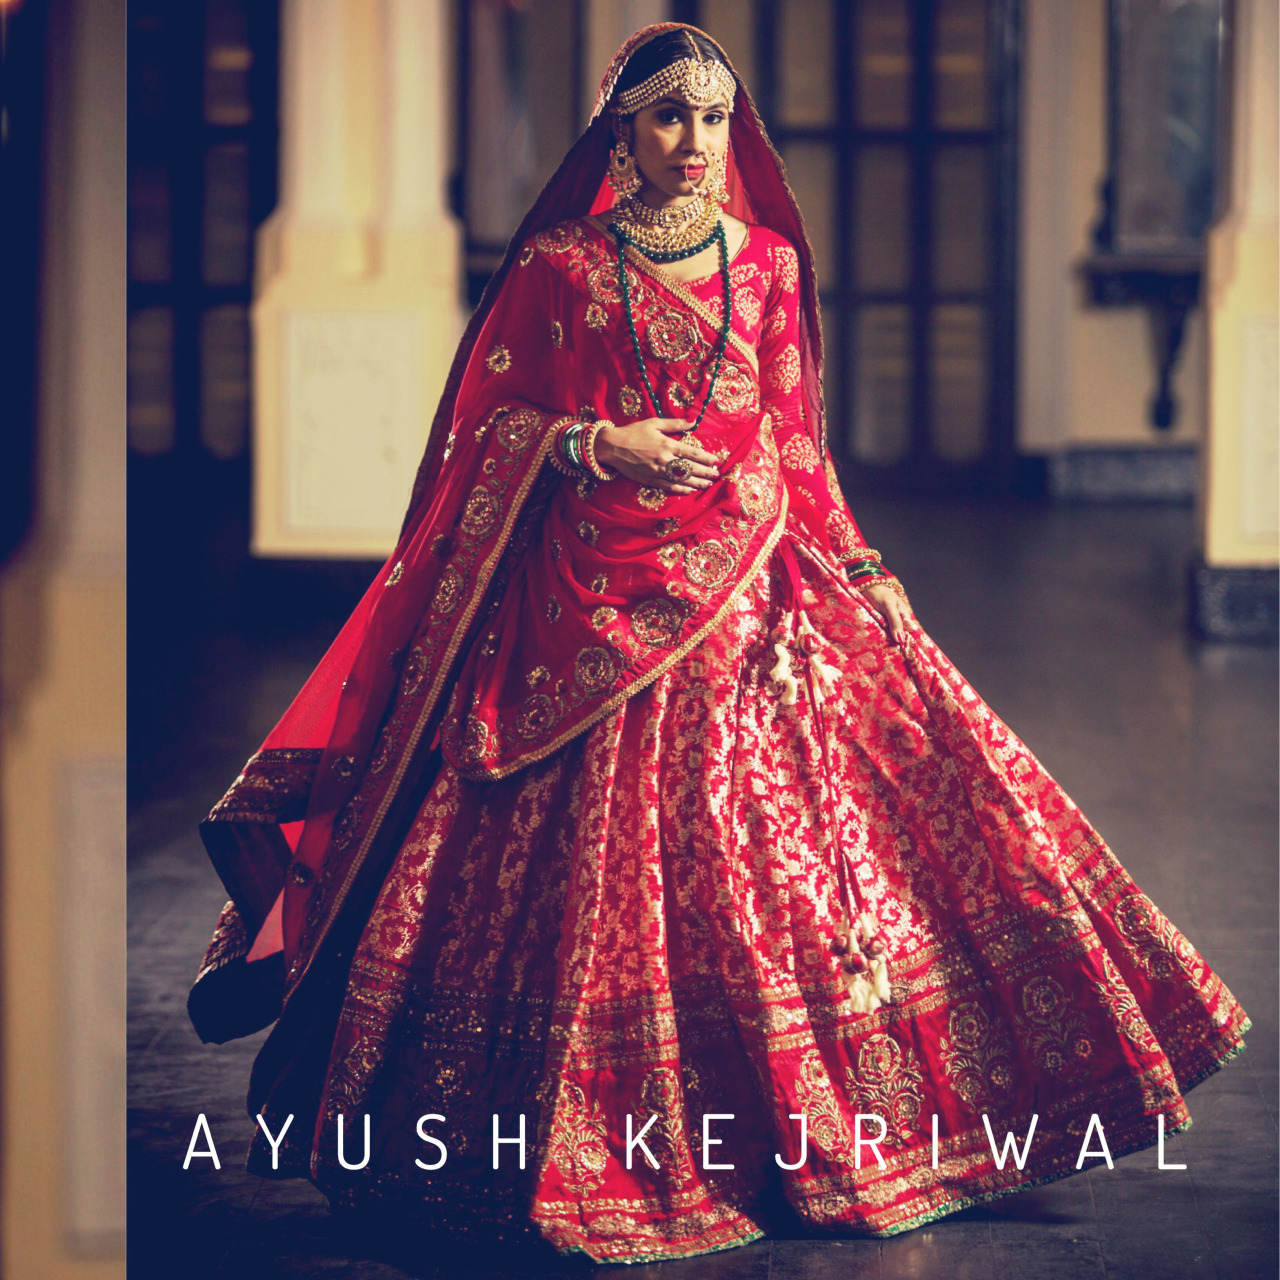 7 Tips To Get An Expensive Wedding Lehenga For Less